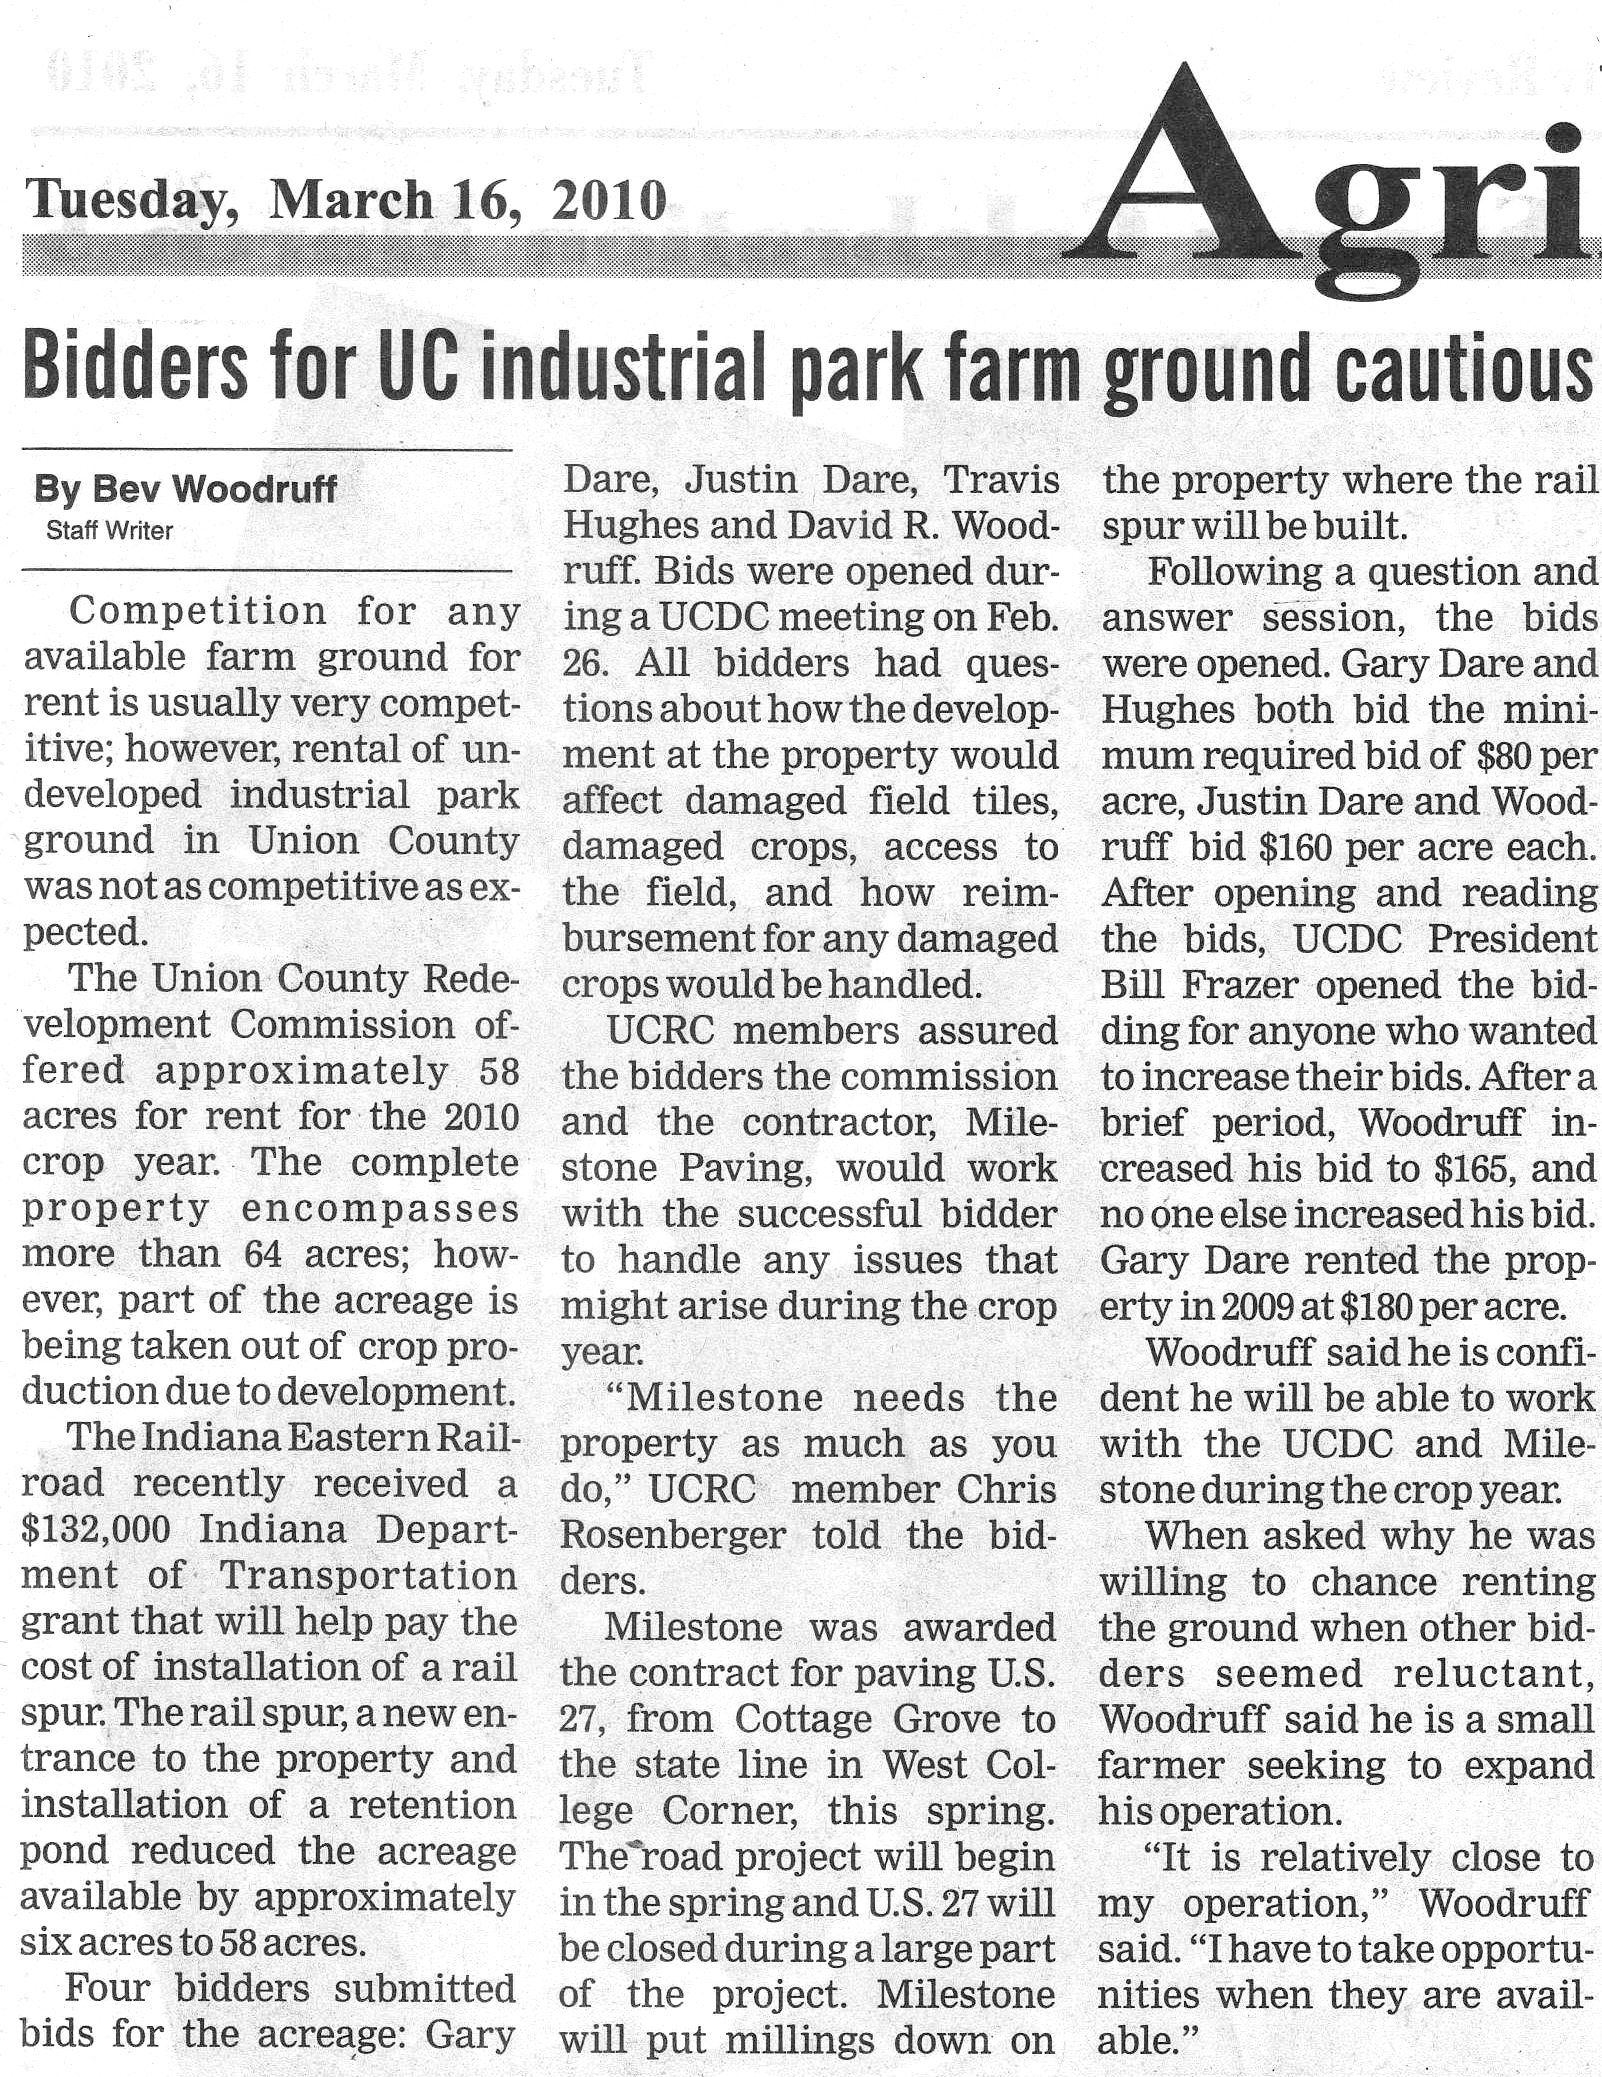 Bidders For UC Industrial Park Farm Ground Cautious - Liberty Herald March 16, 2010